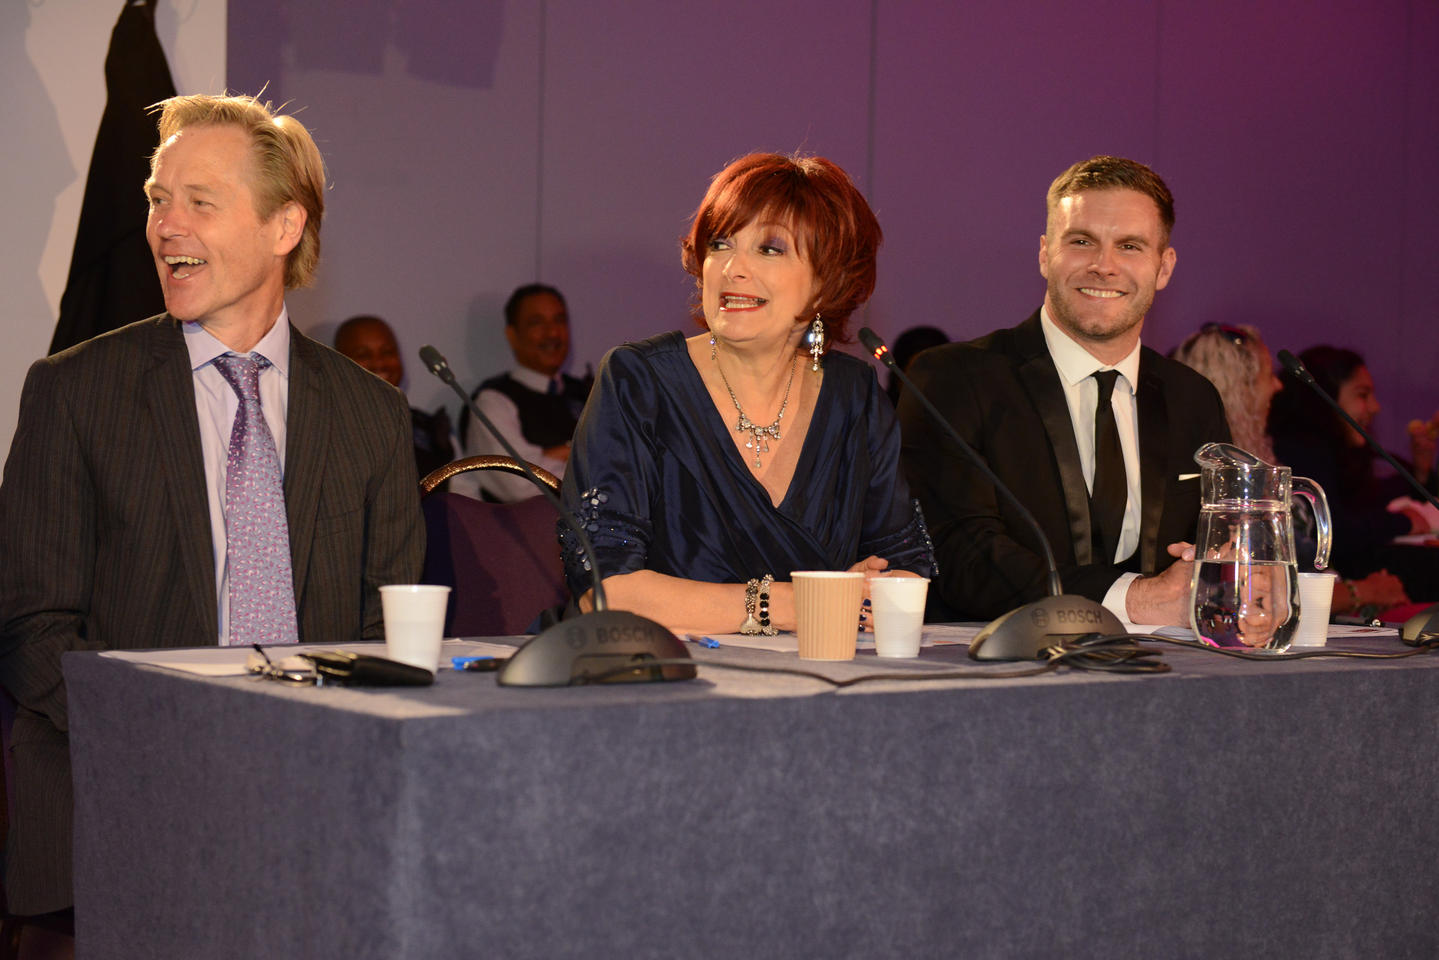 With Sharon Osbourne on the panel at the Cricked Neck Competition.